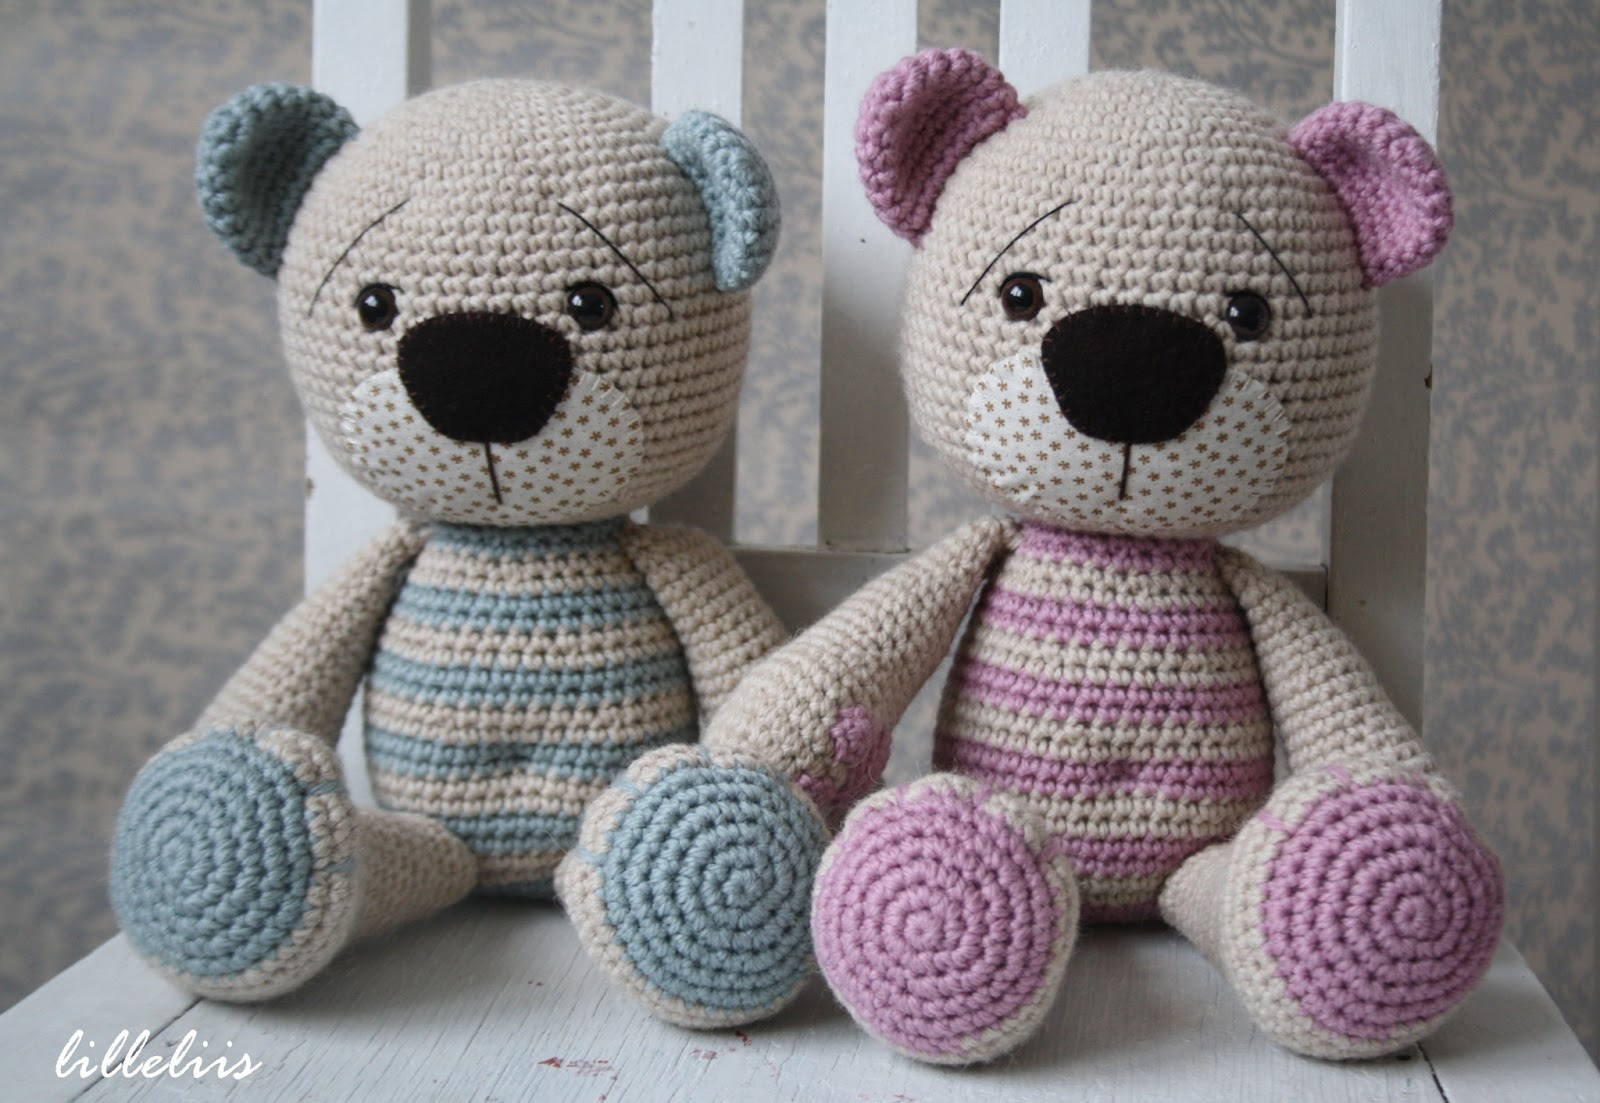 Amigurumi Crochet Teddy Bear Patterns : lilleliis.blogspot.com: Tummy Teddy amigurumi pattern